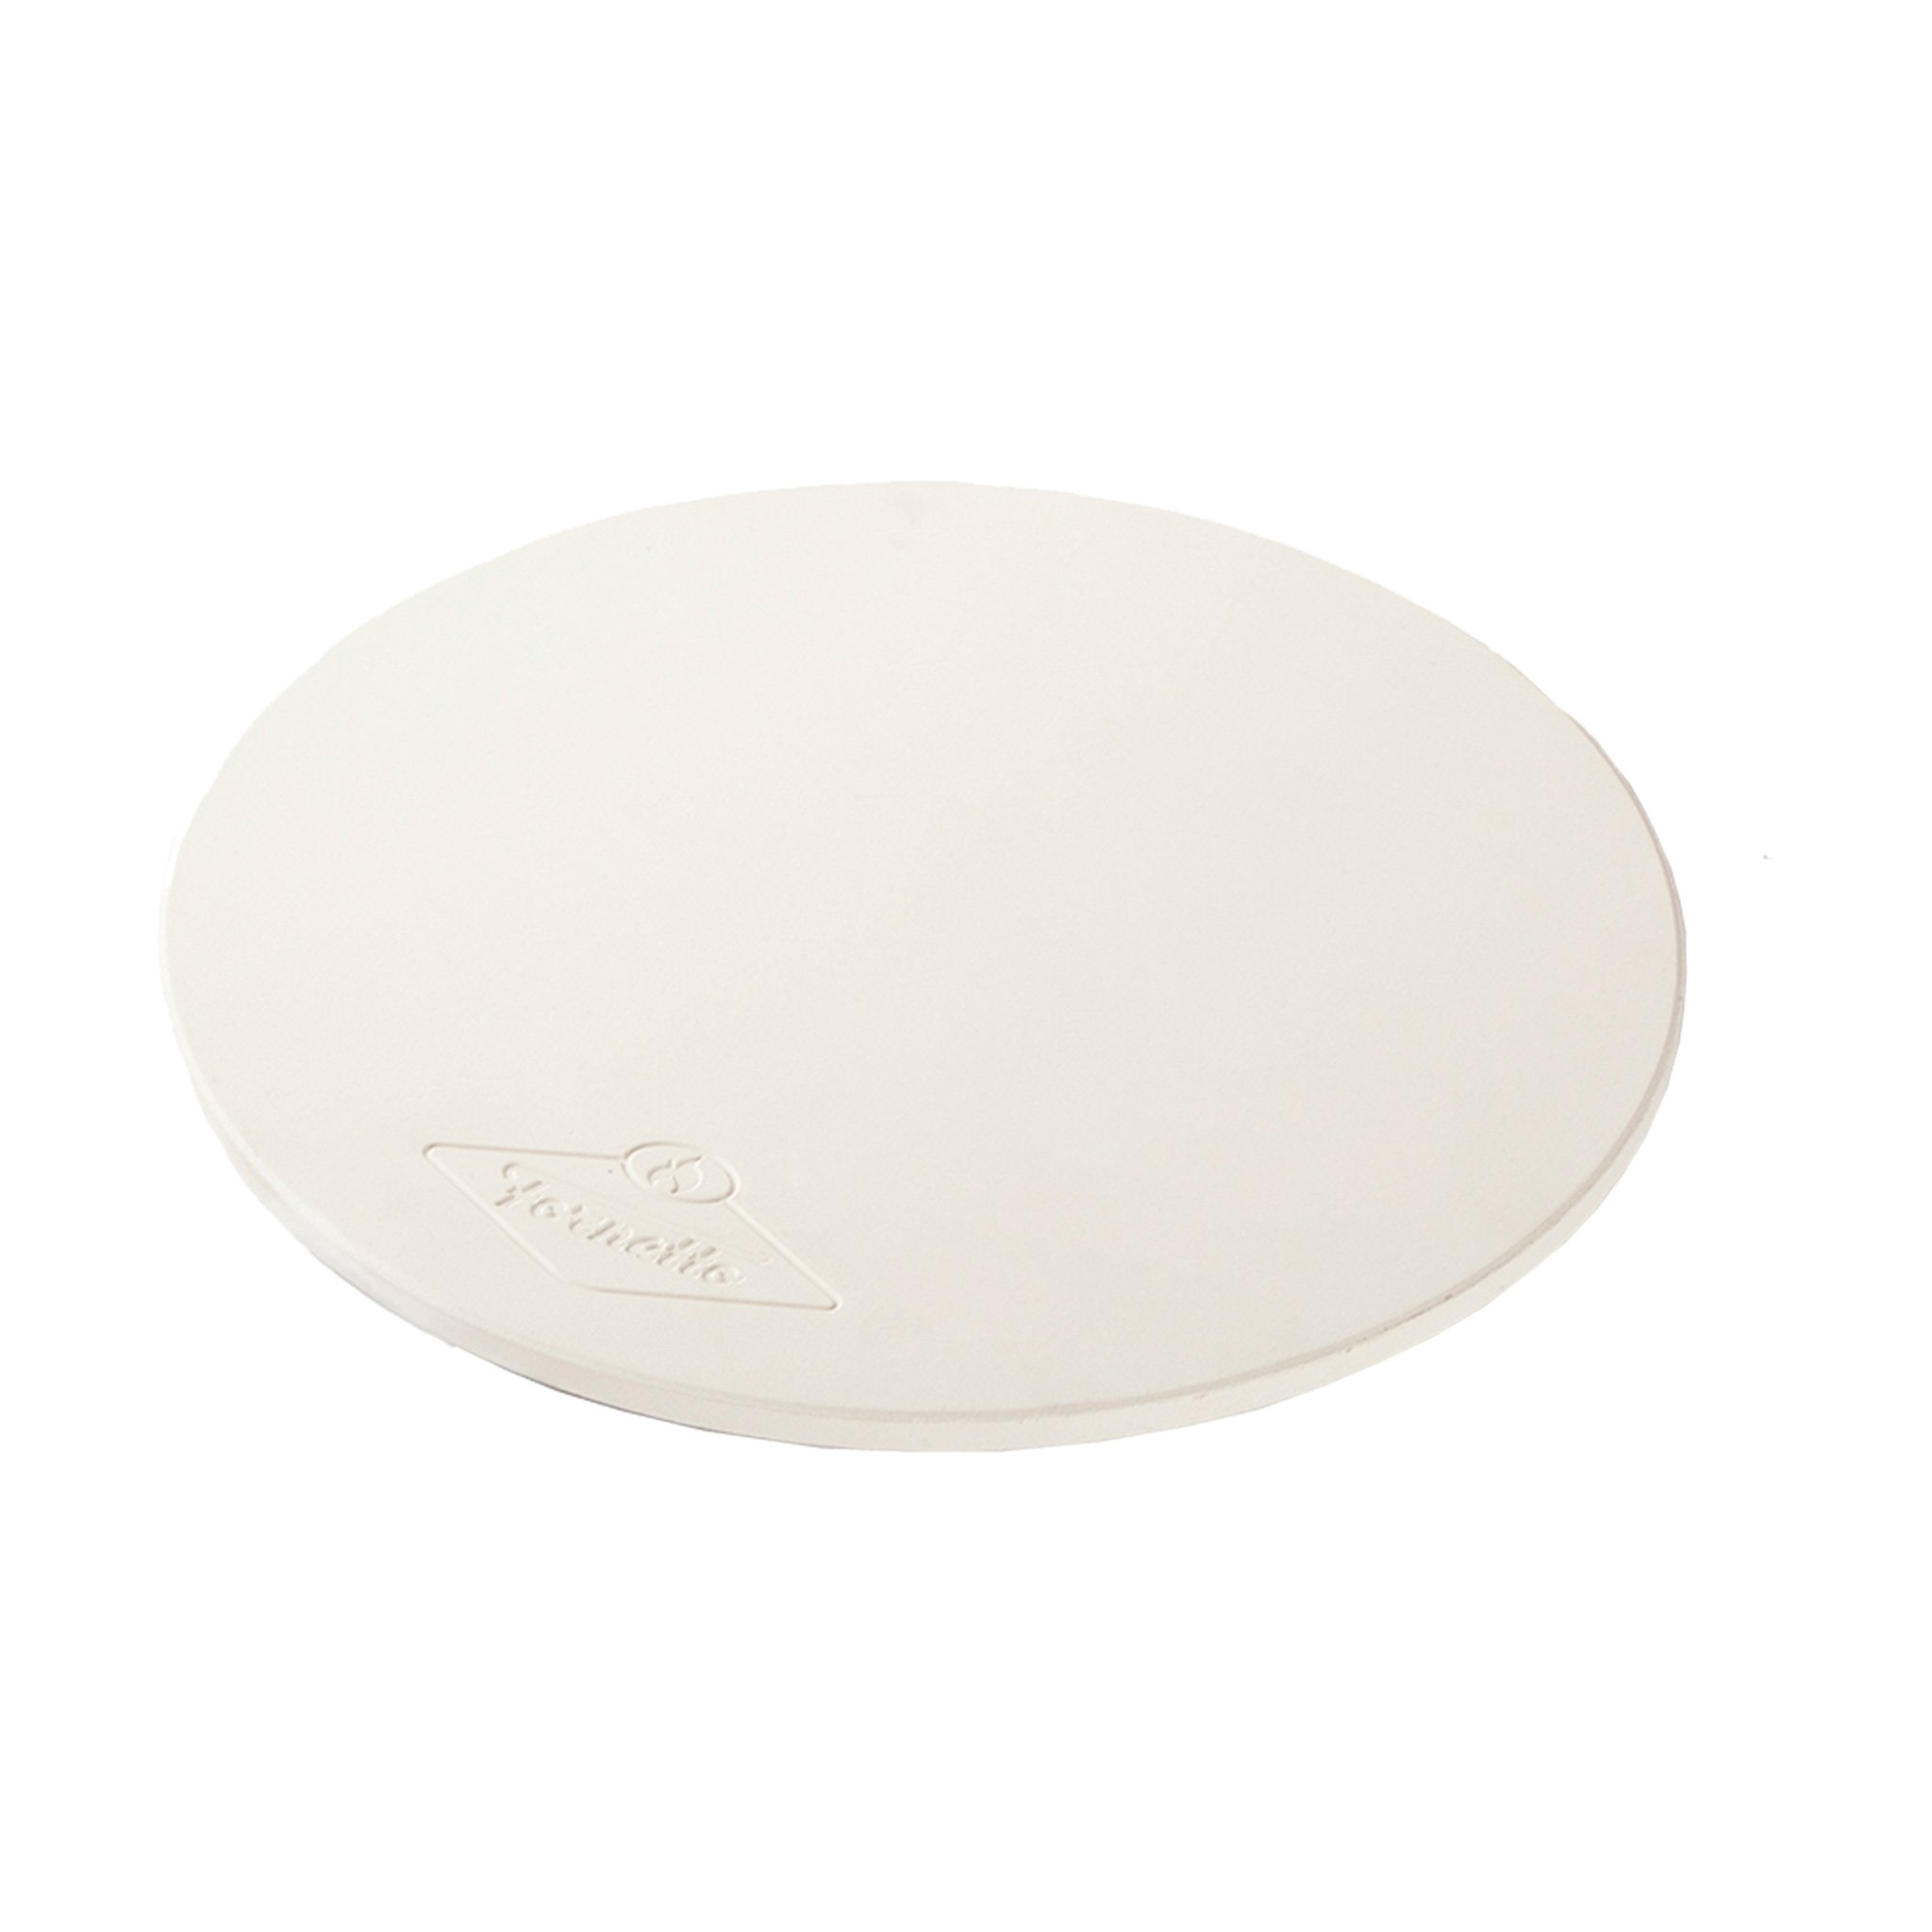 fornetto-large-pizza-stone-1